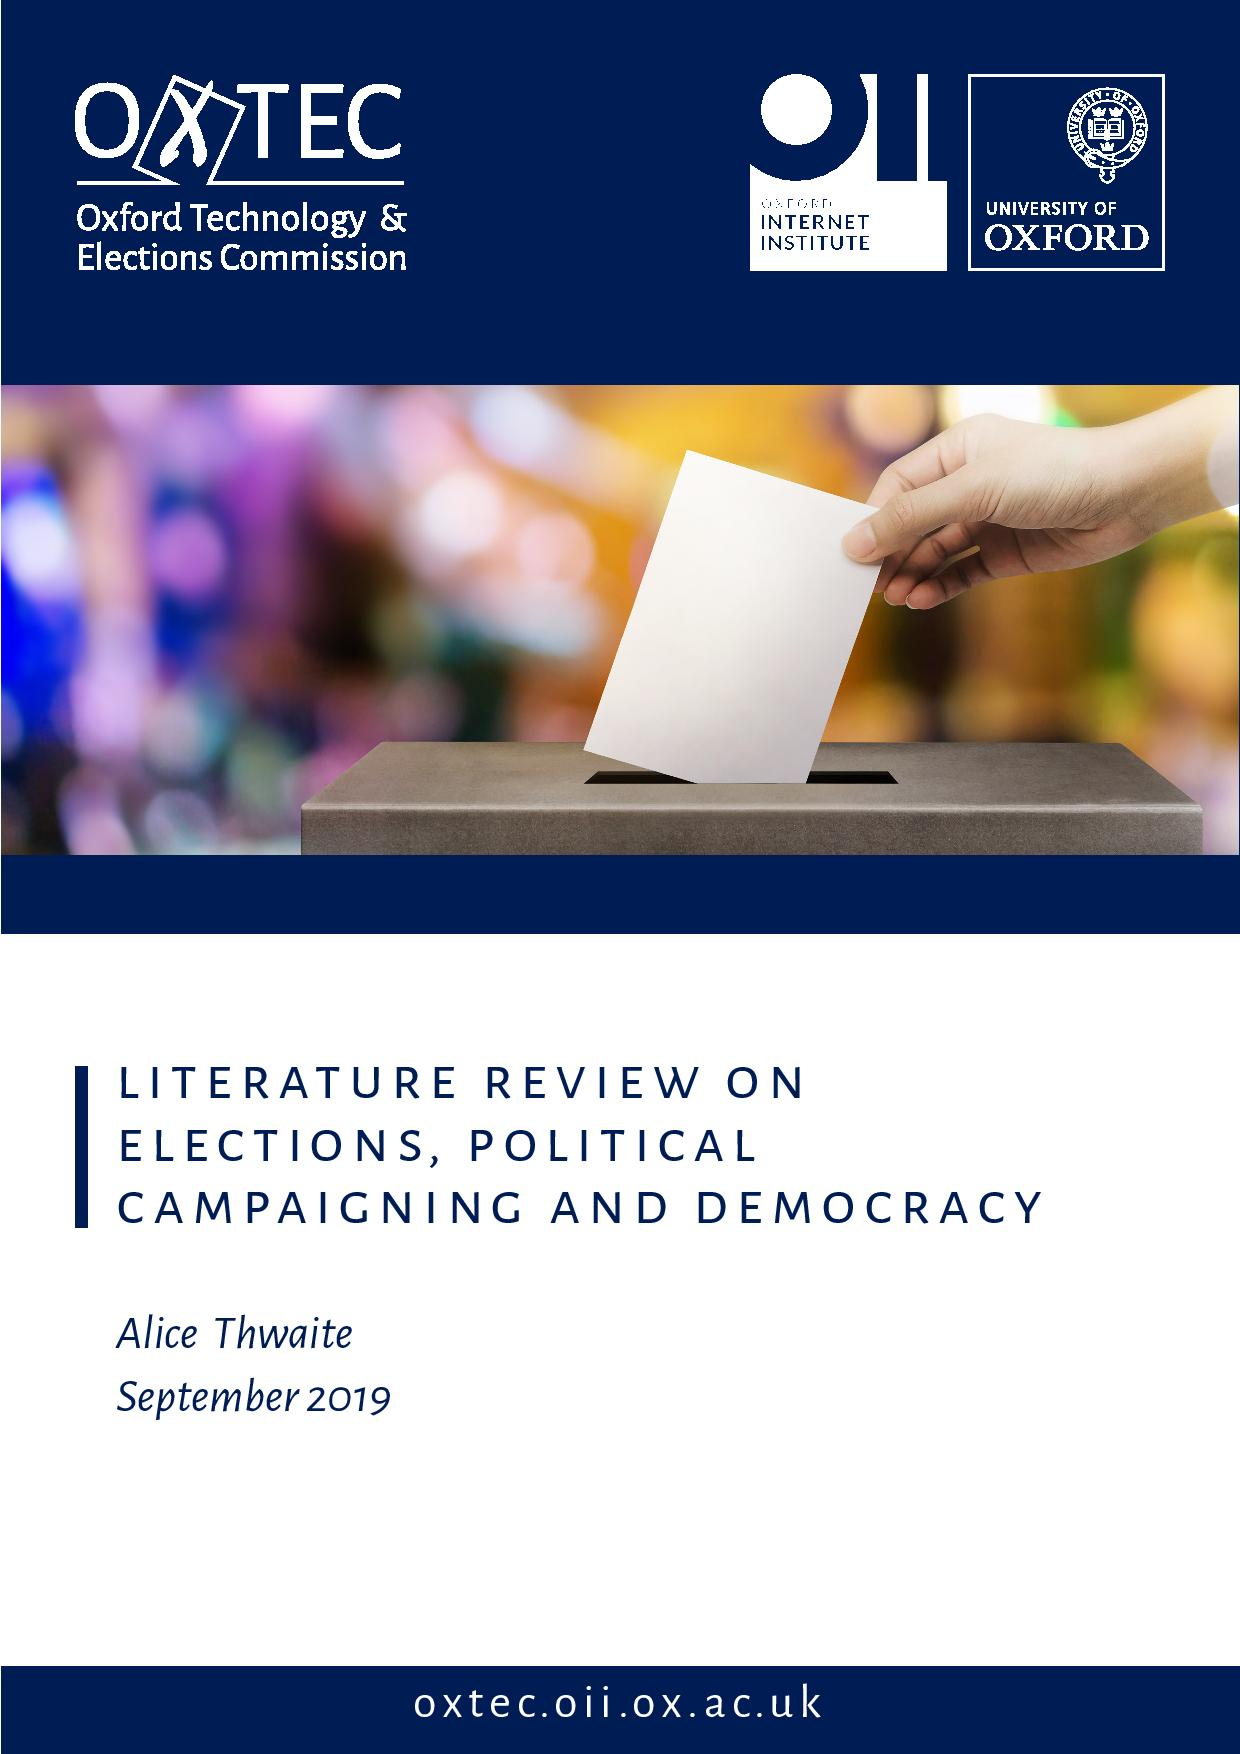 Literature Review on Elections, Political Campaigning and Democracy